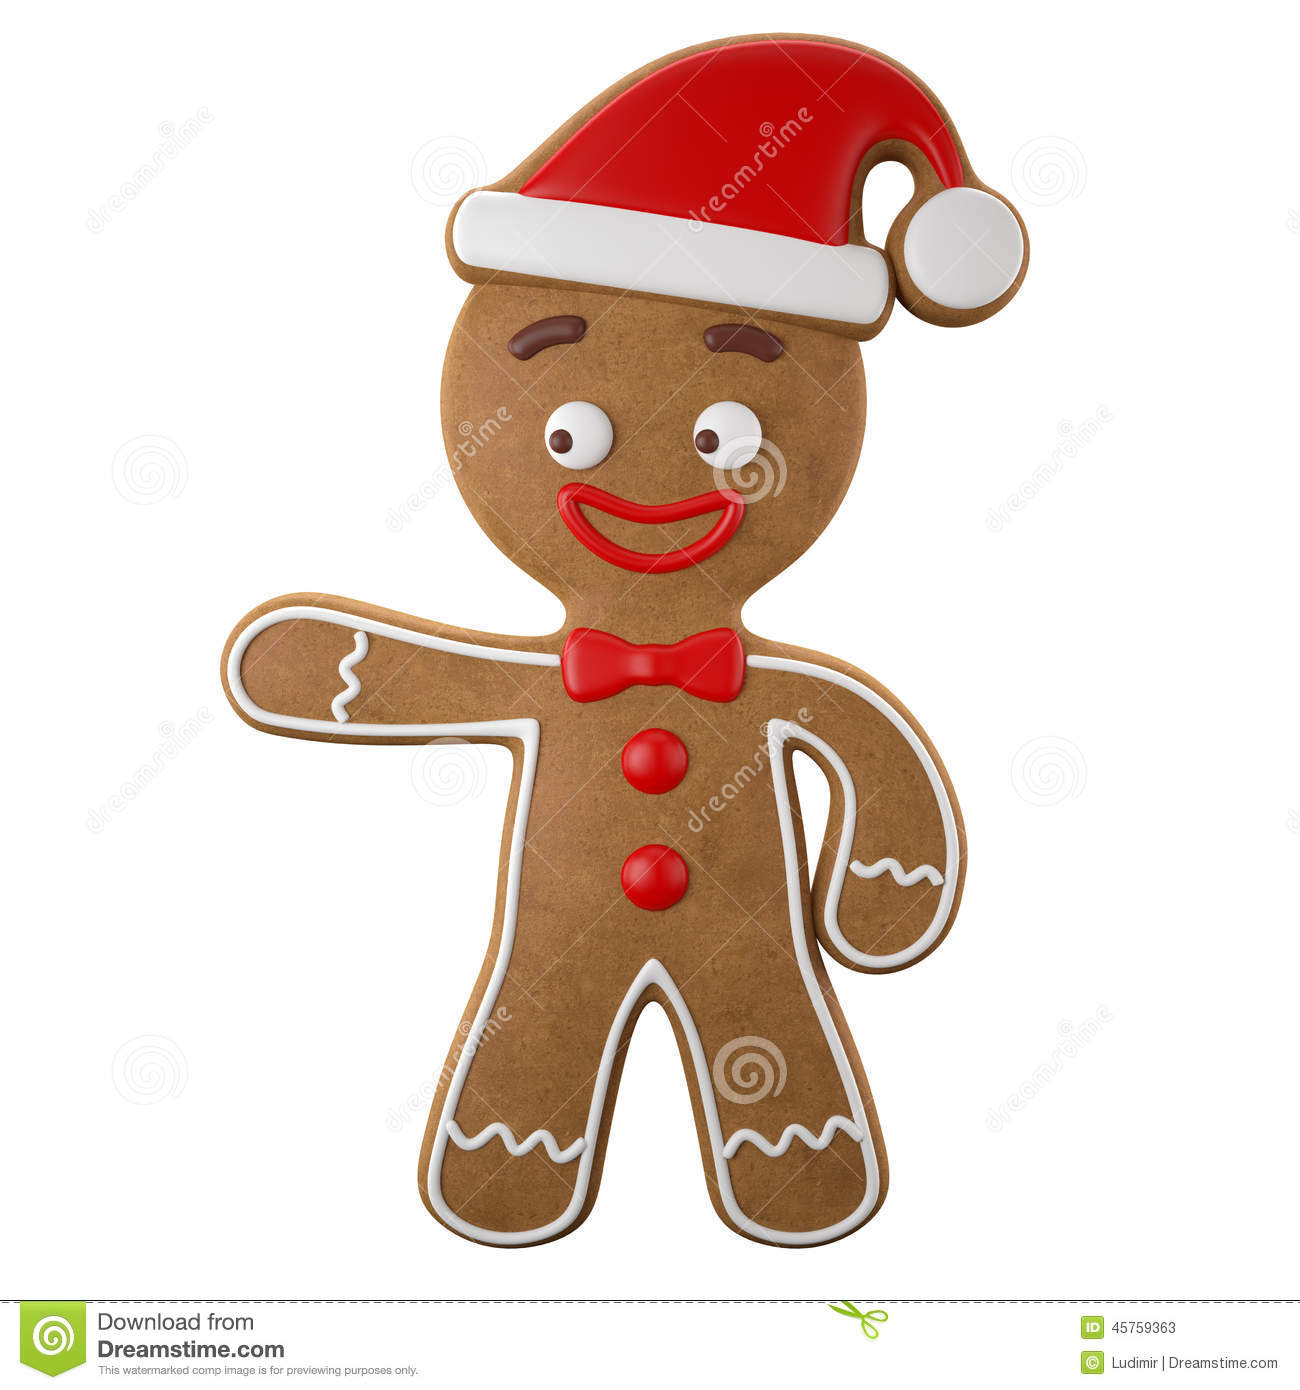 Download Free Sweet Home 3d Sweet Home 3d 4 1 Download: 3d Character, Cheerful Gingerbread, Christmas Funny